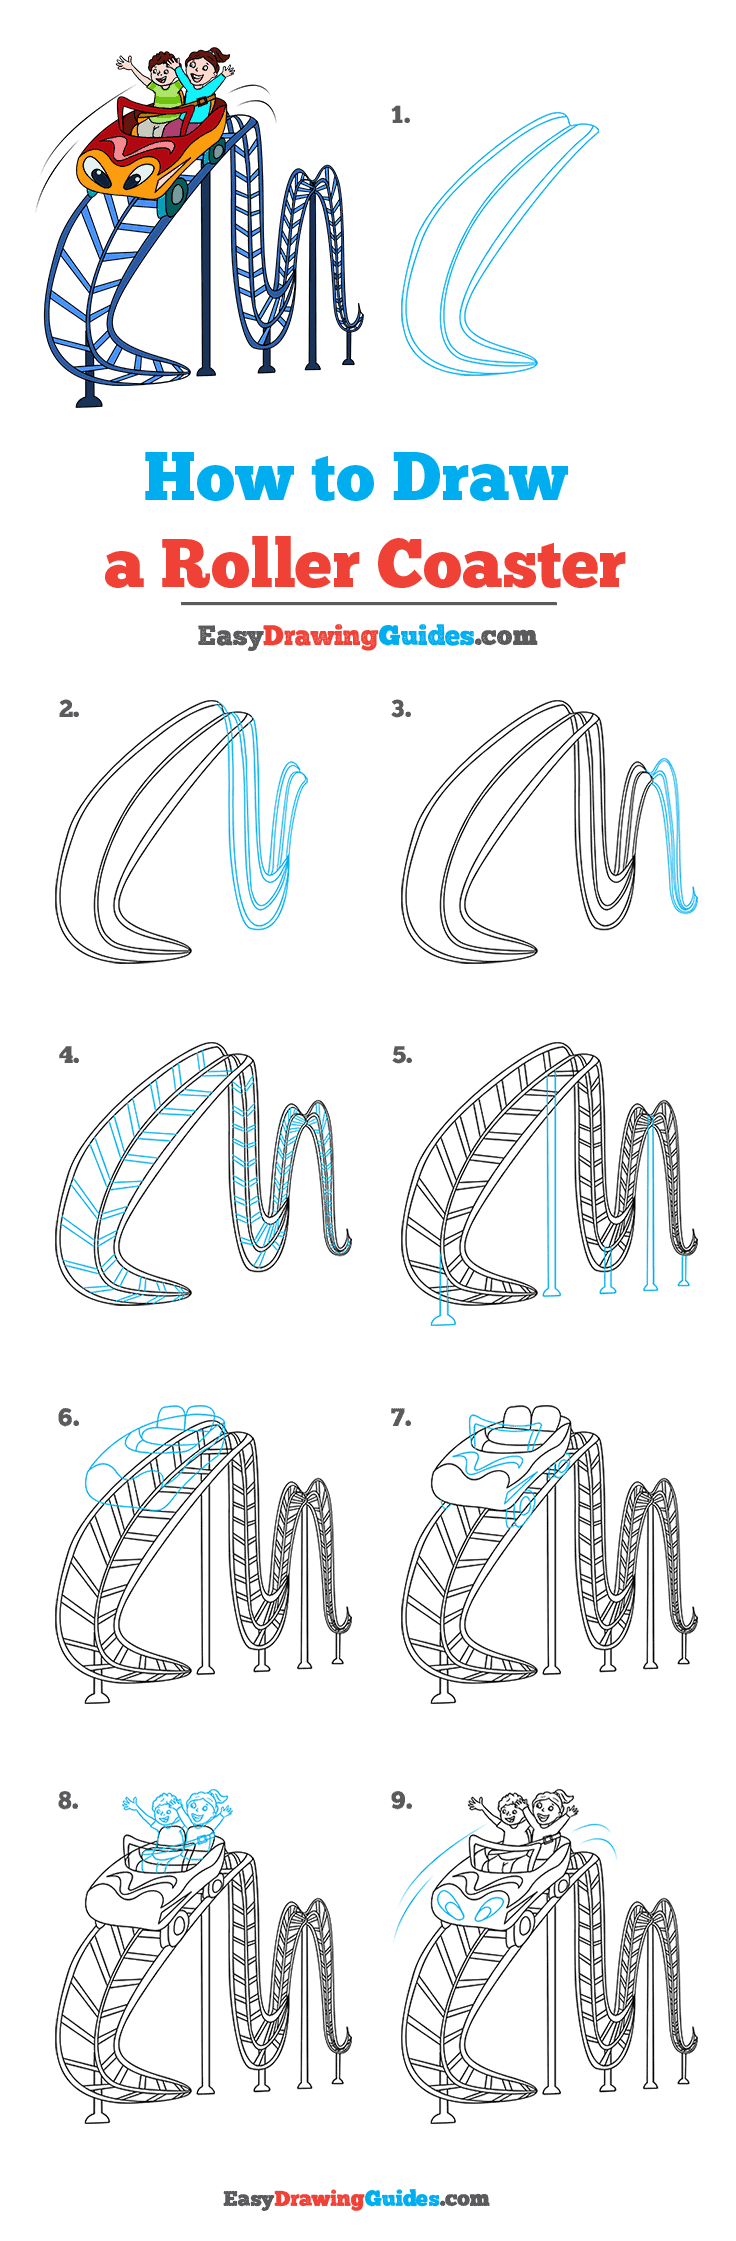 How to Draw Roller Coaster